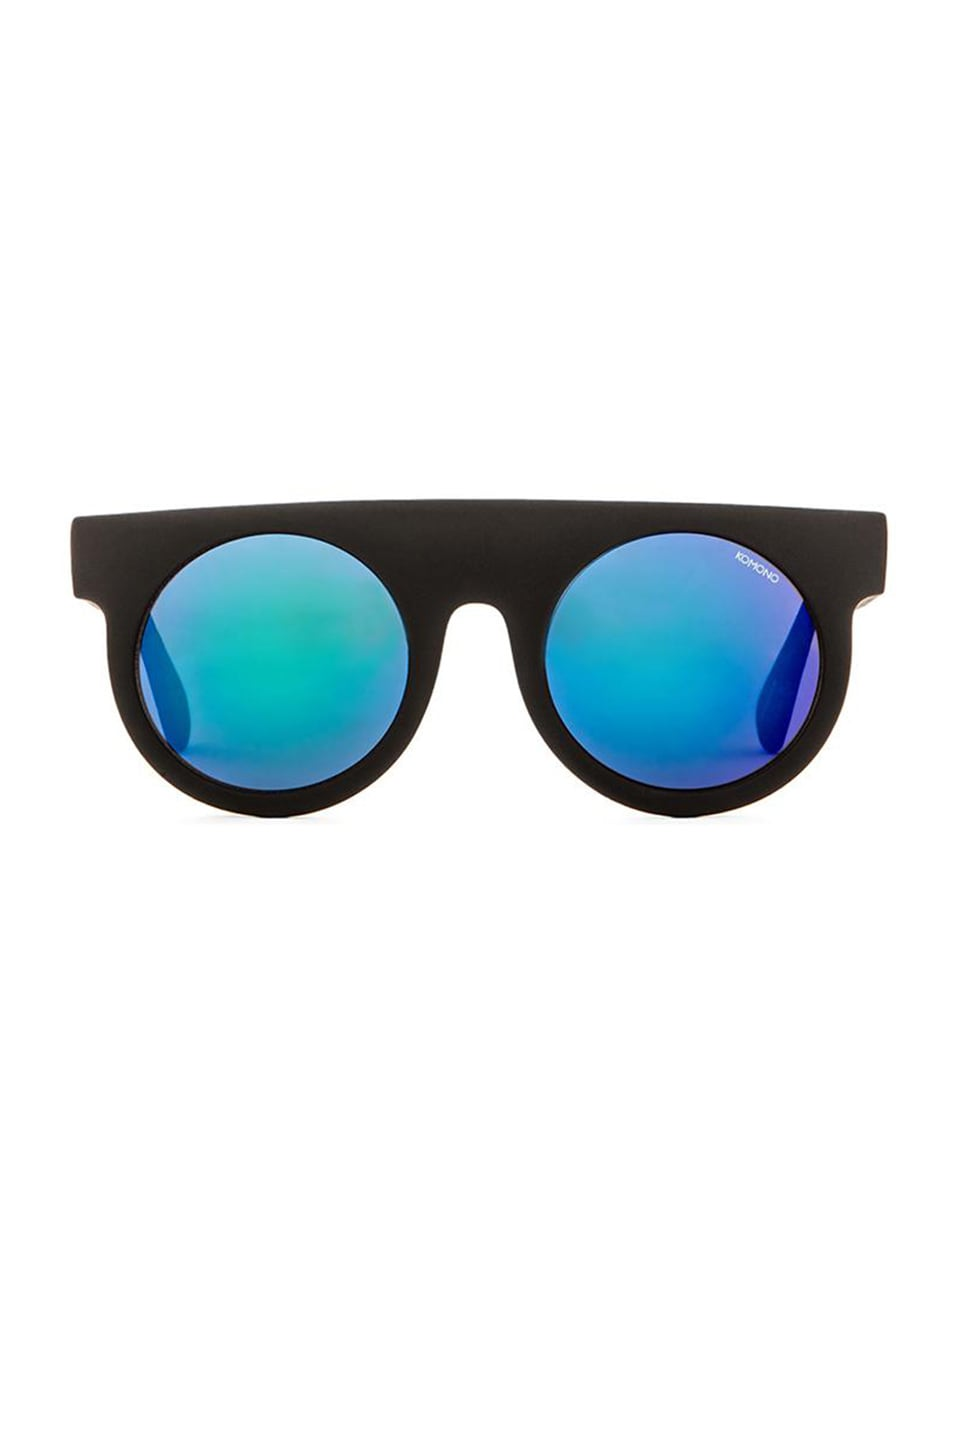 Komono The Mirror Series Hippolyte in Black Rubber & Blue Mirror